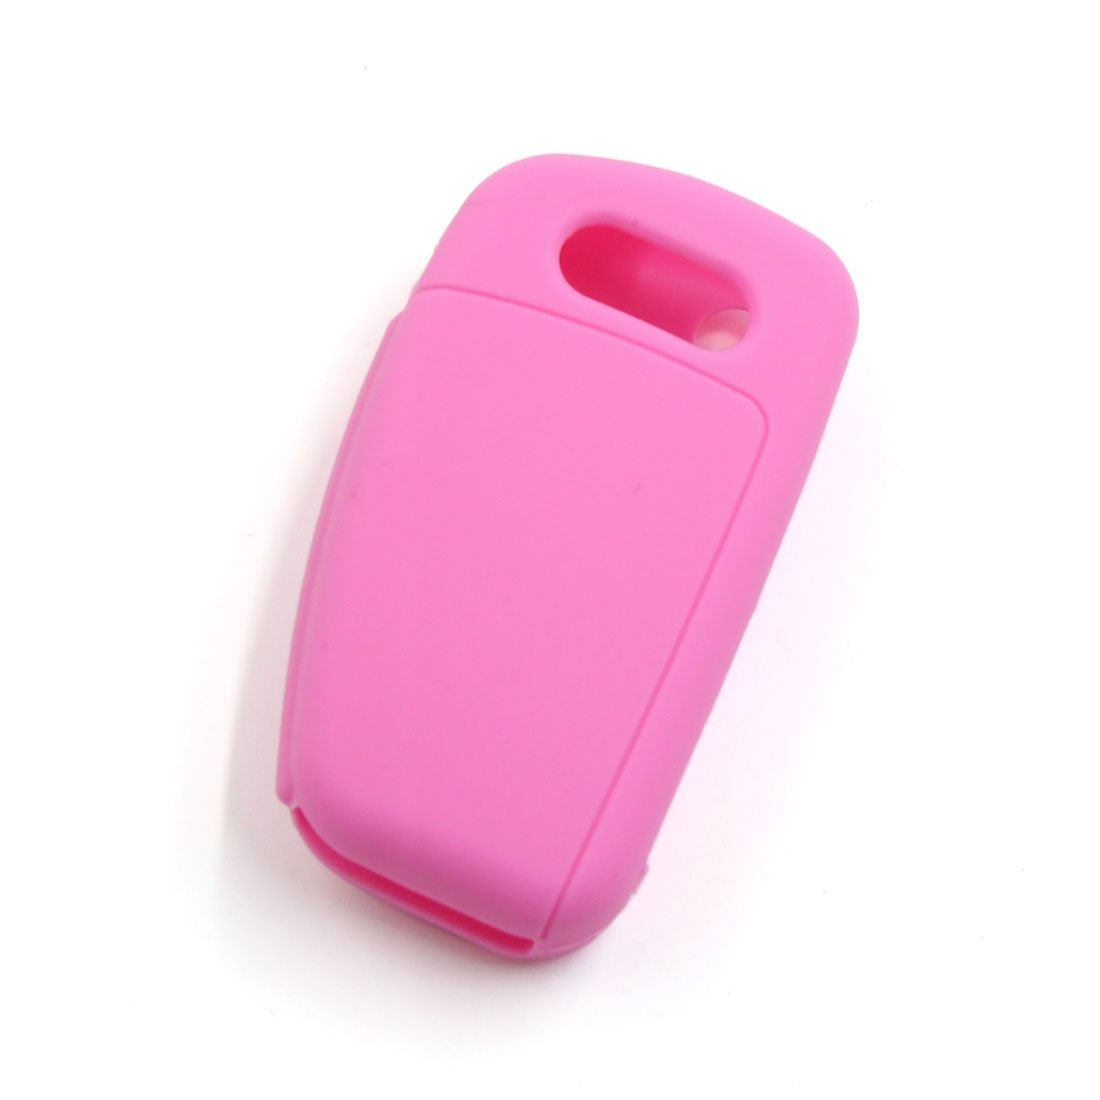 uxcell Pink Silicone Car Remote Flip Key Fob Cover Case for Audi A1 A3 A4L A6L Q7 Q5 Q3 a17052200ux2357